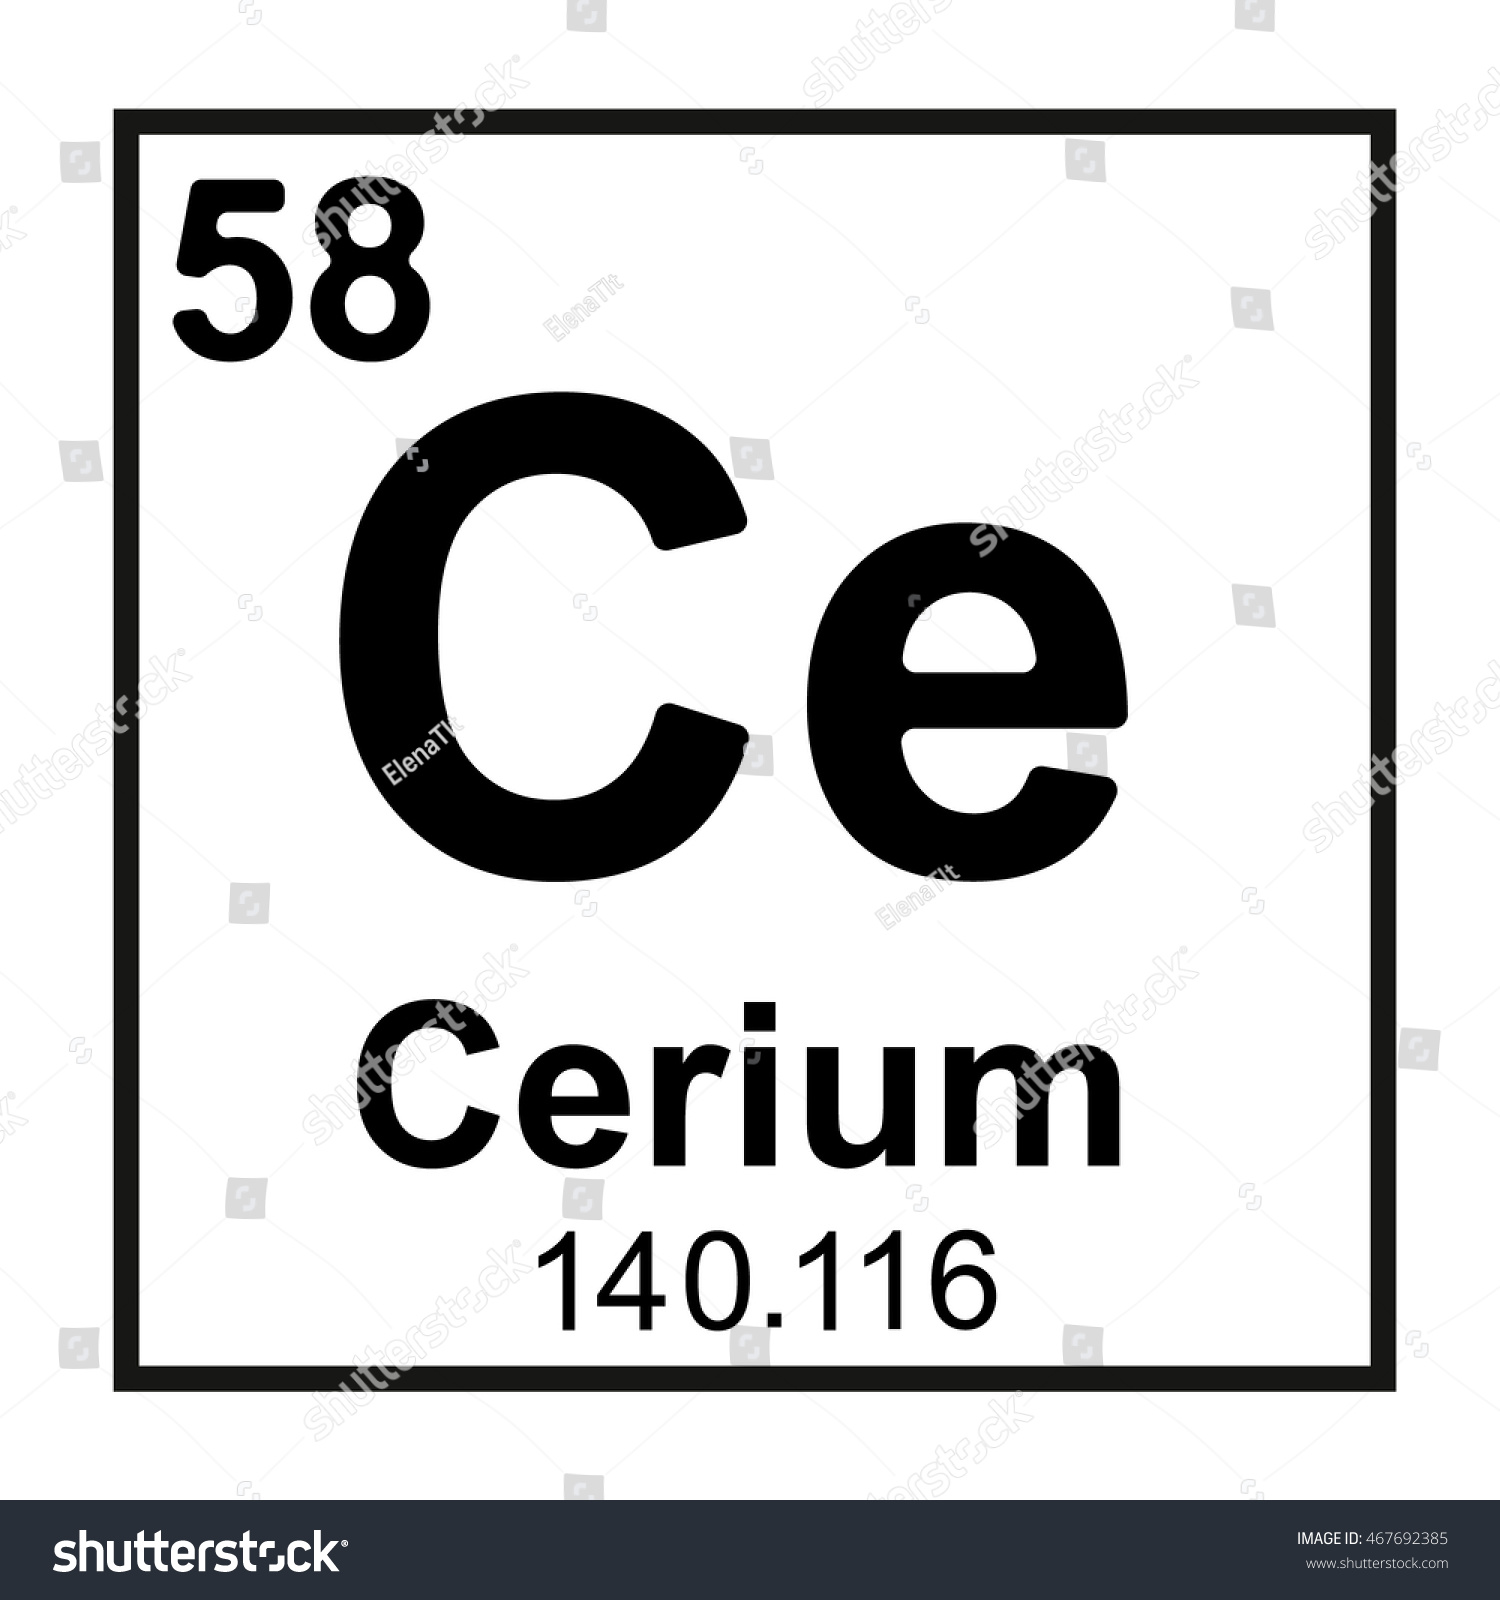 Carbon monoxide symbol periodic table image collections periodic cerium on the periodic table aviongoldcorp periodic table element cerium stock vector 467692385 shutterstock gamestrikefo image gamestrikefo Image collections